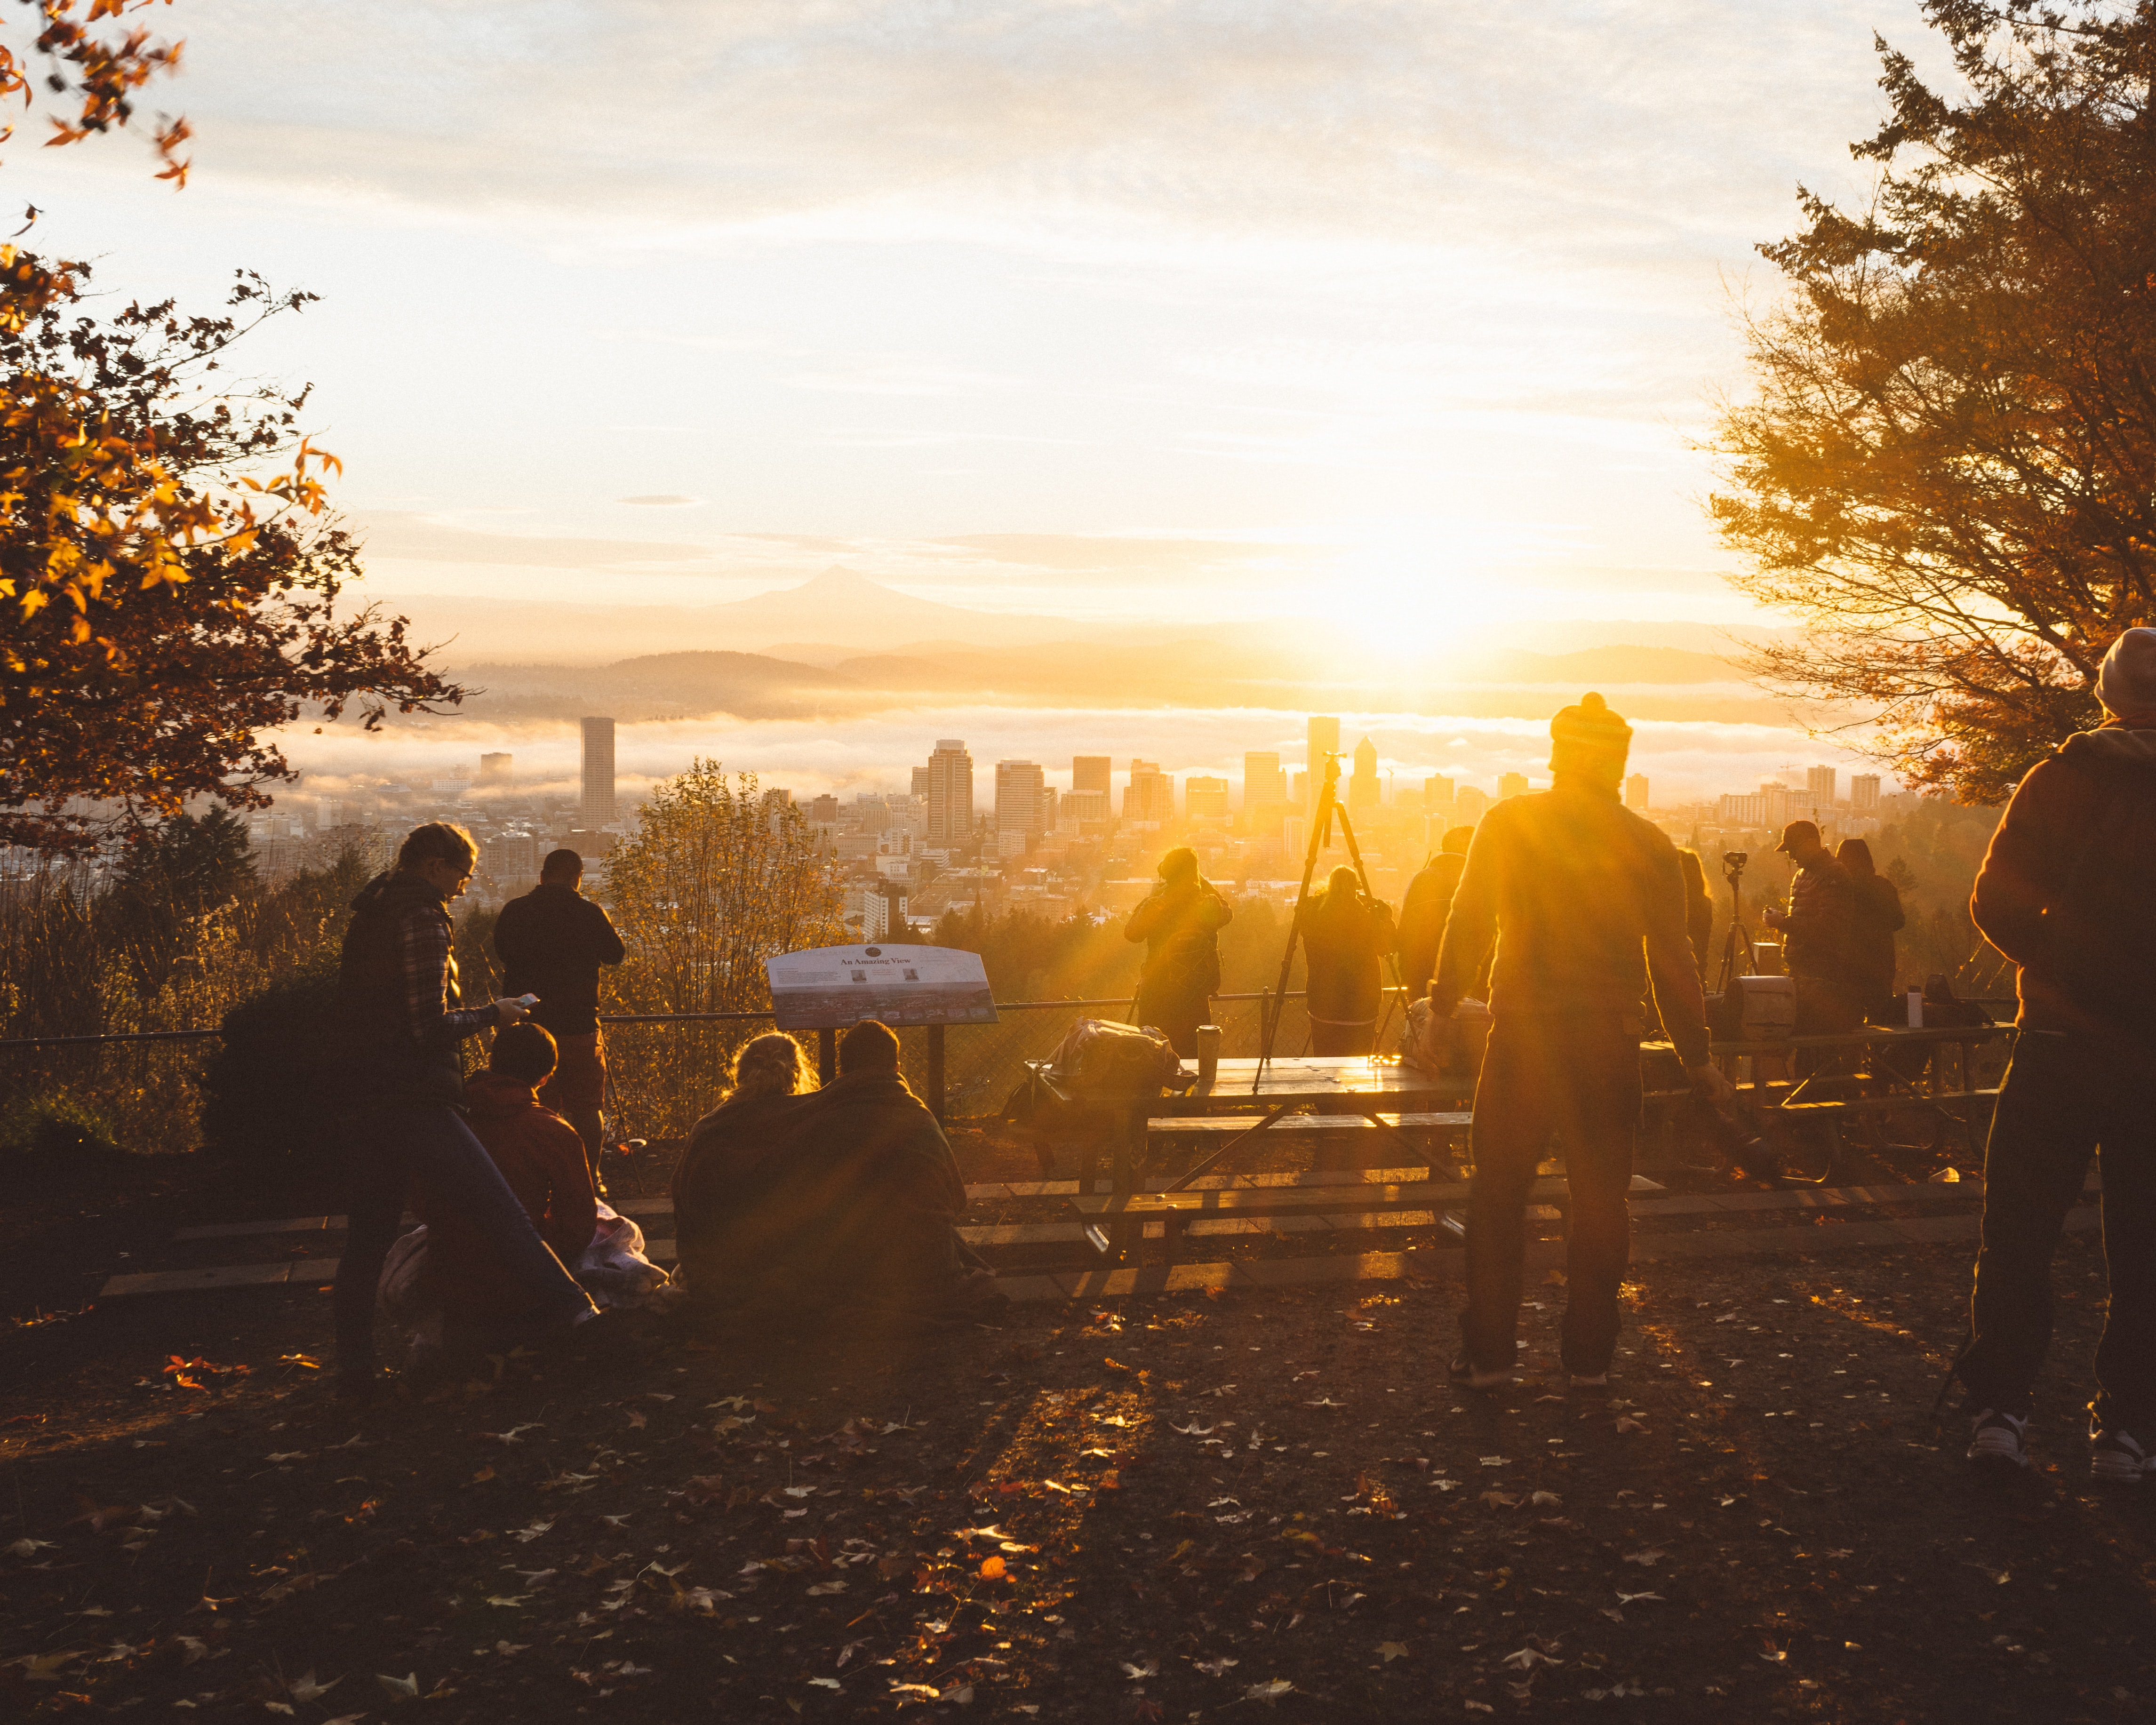 A group of people watching the sunrise-or-sunset from a hilltop lookout spot at Pittock Mansion